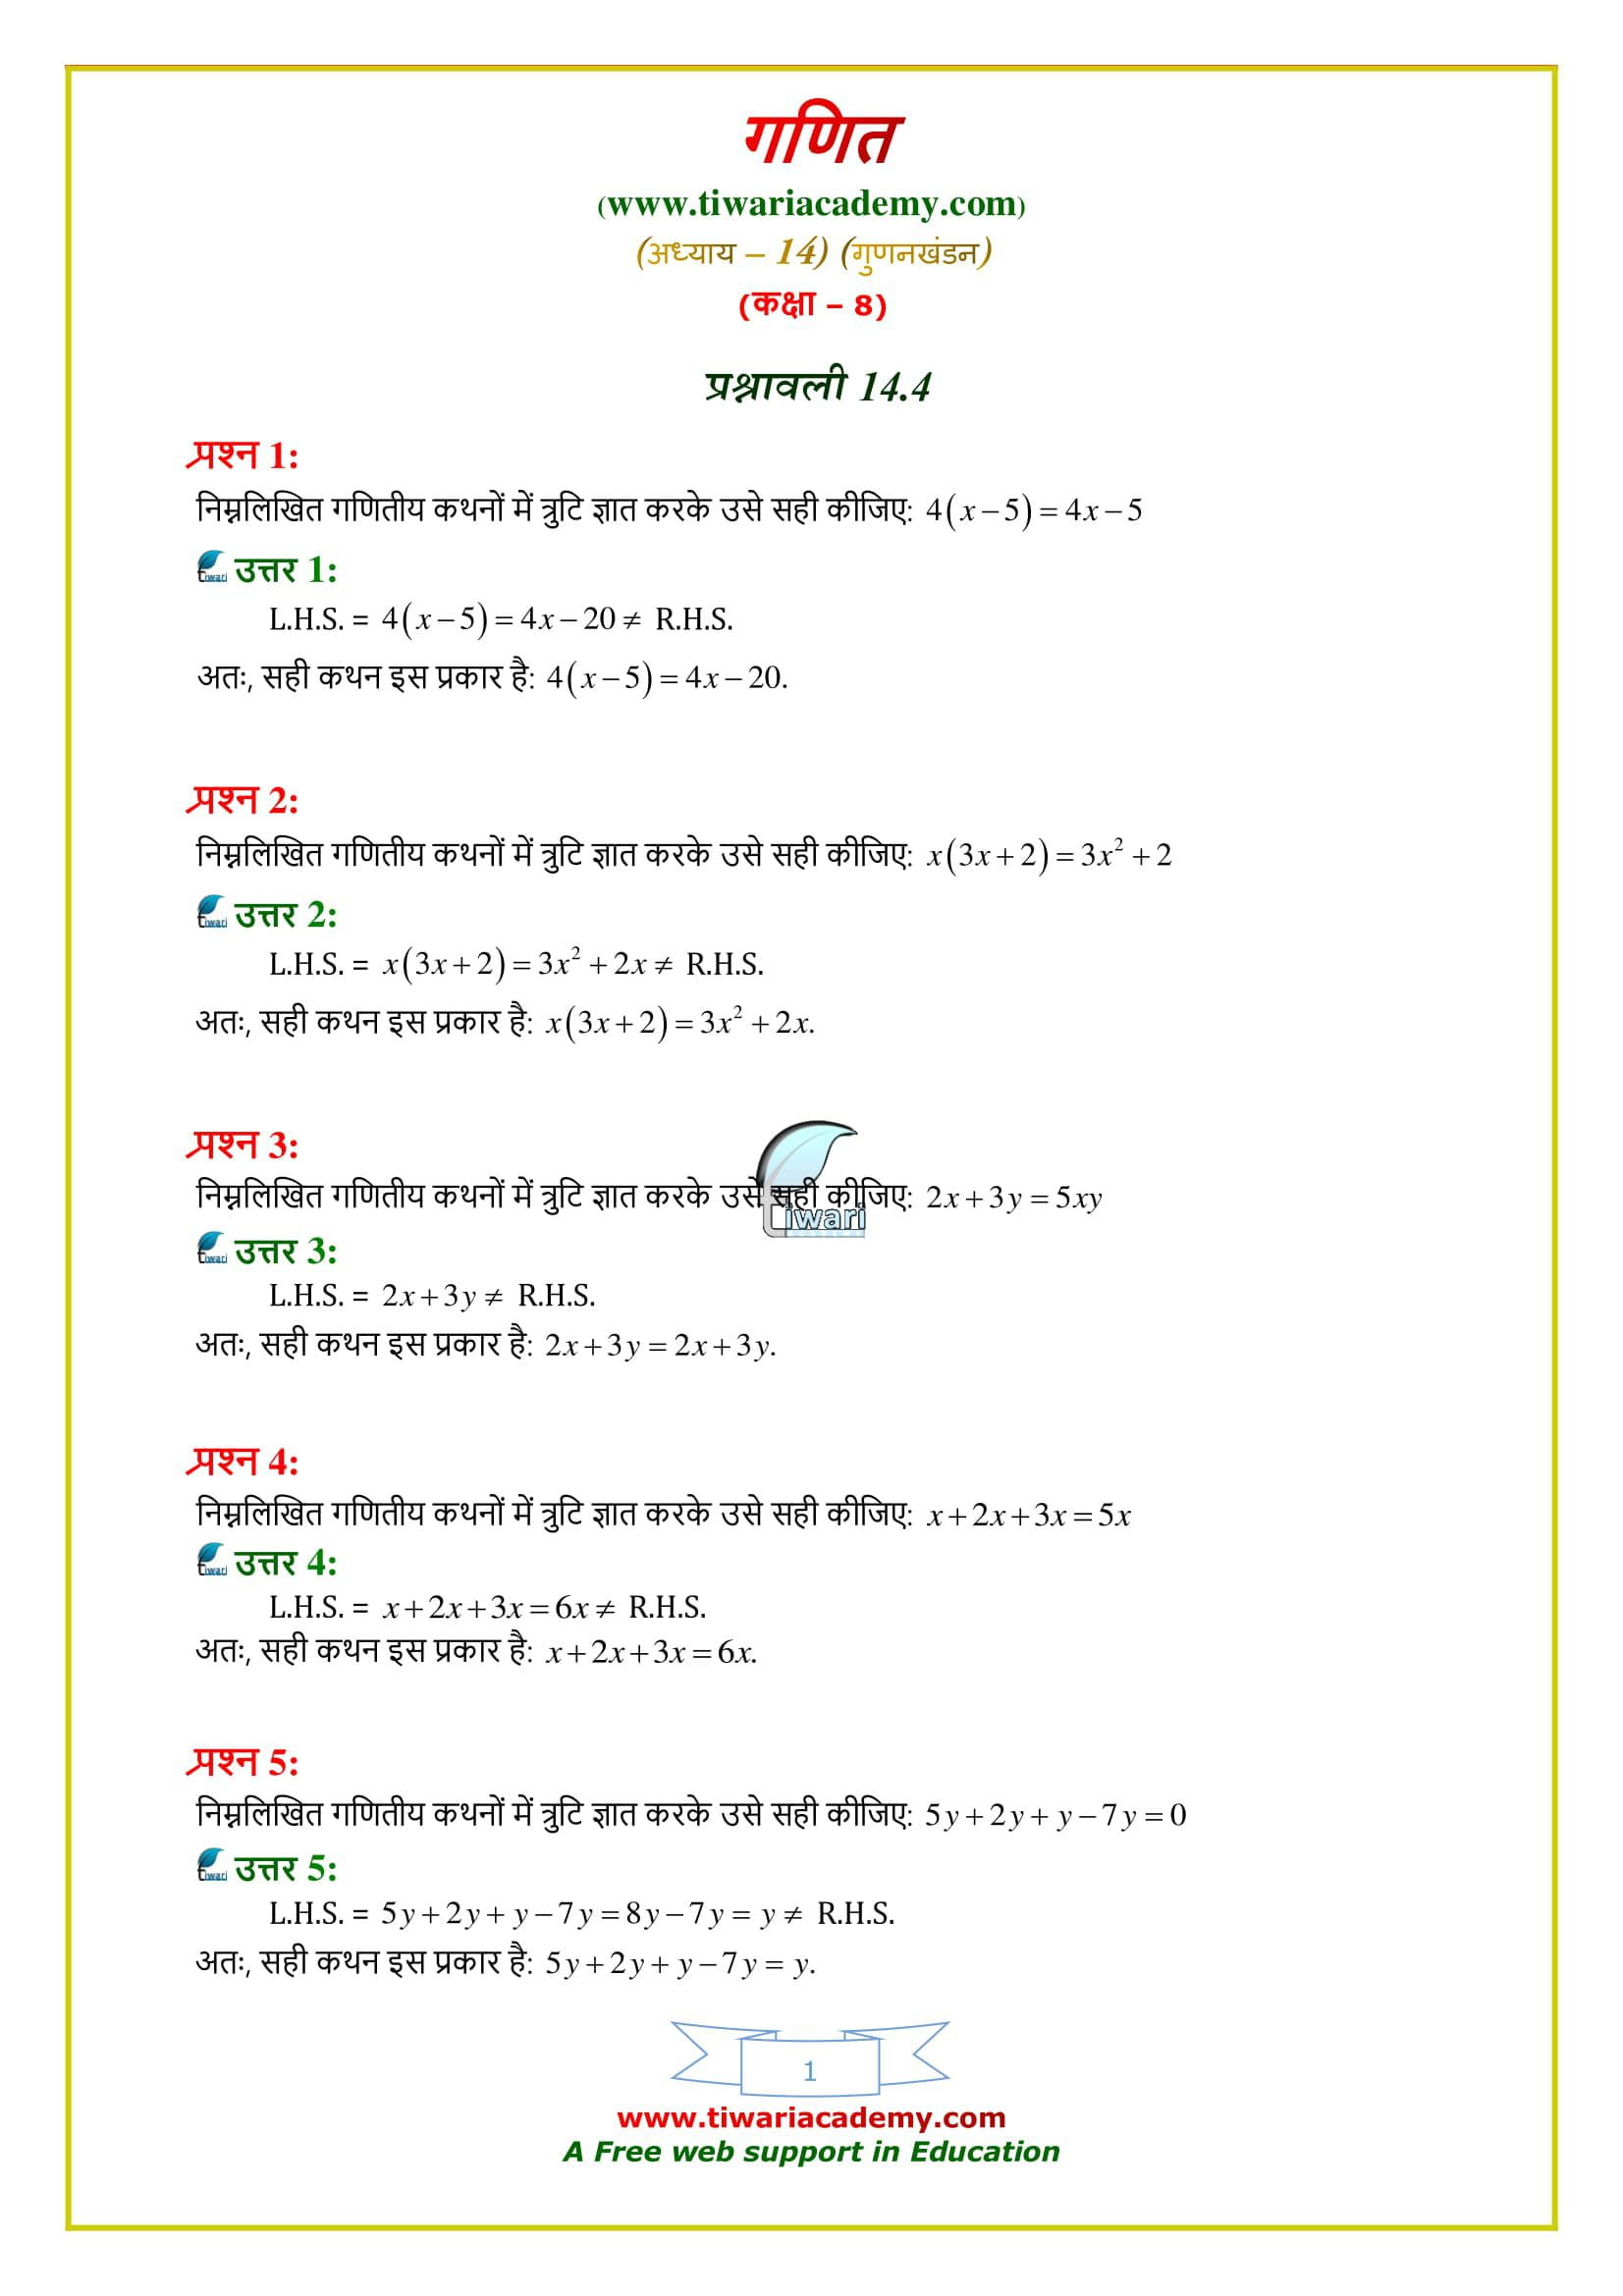 8 Maths exercise 14.4 solutions in hindi